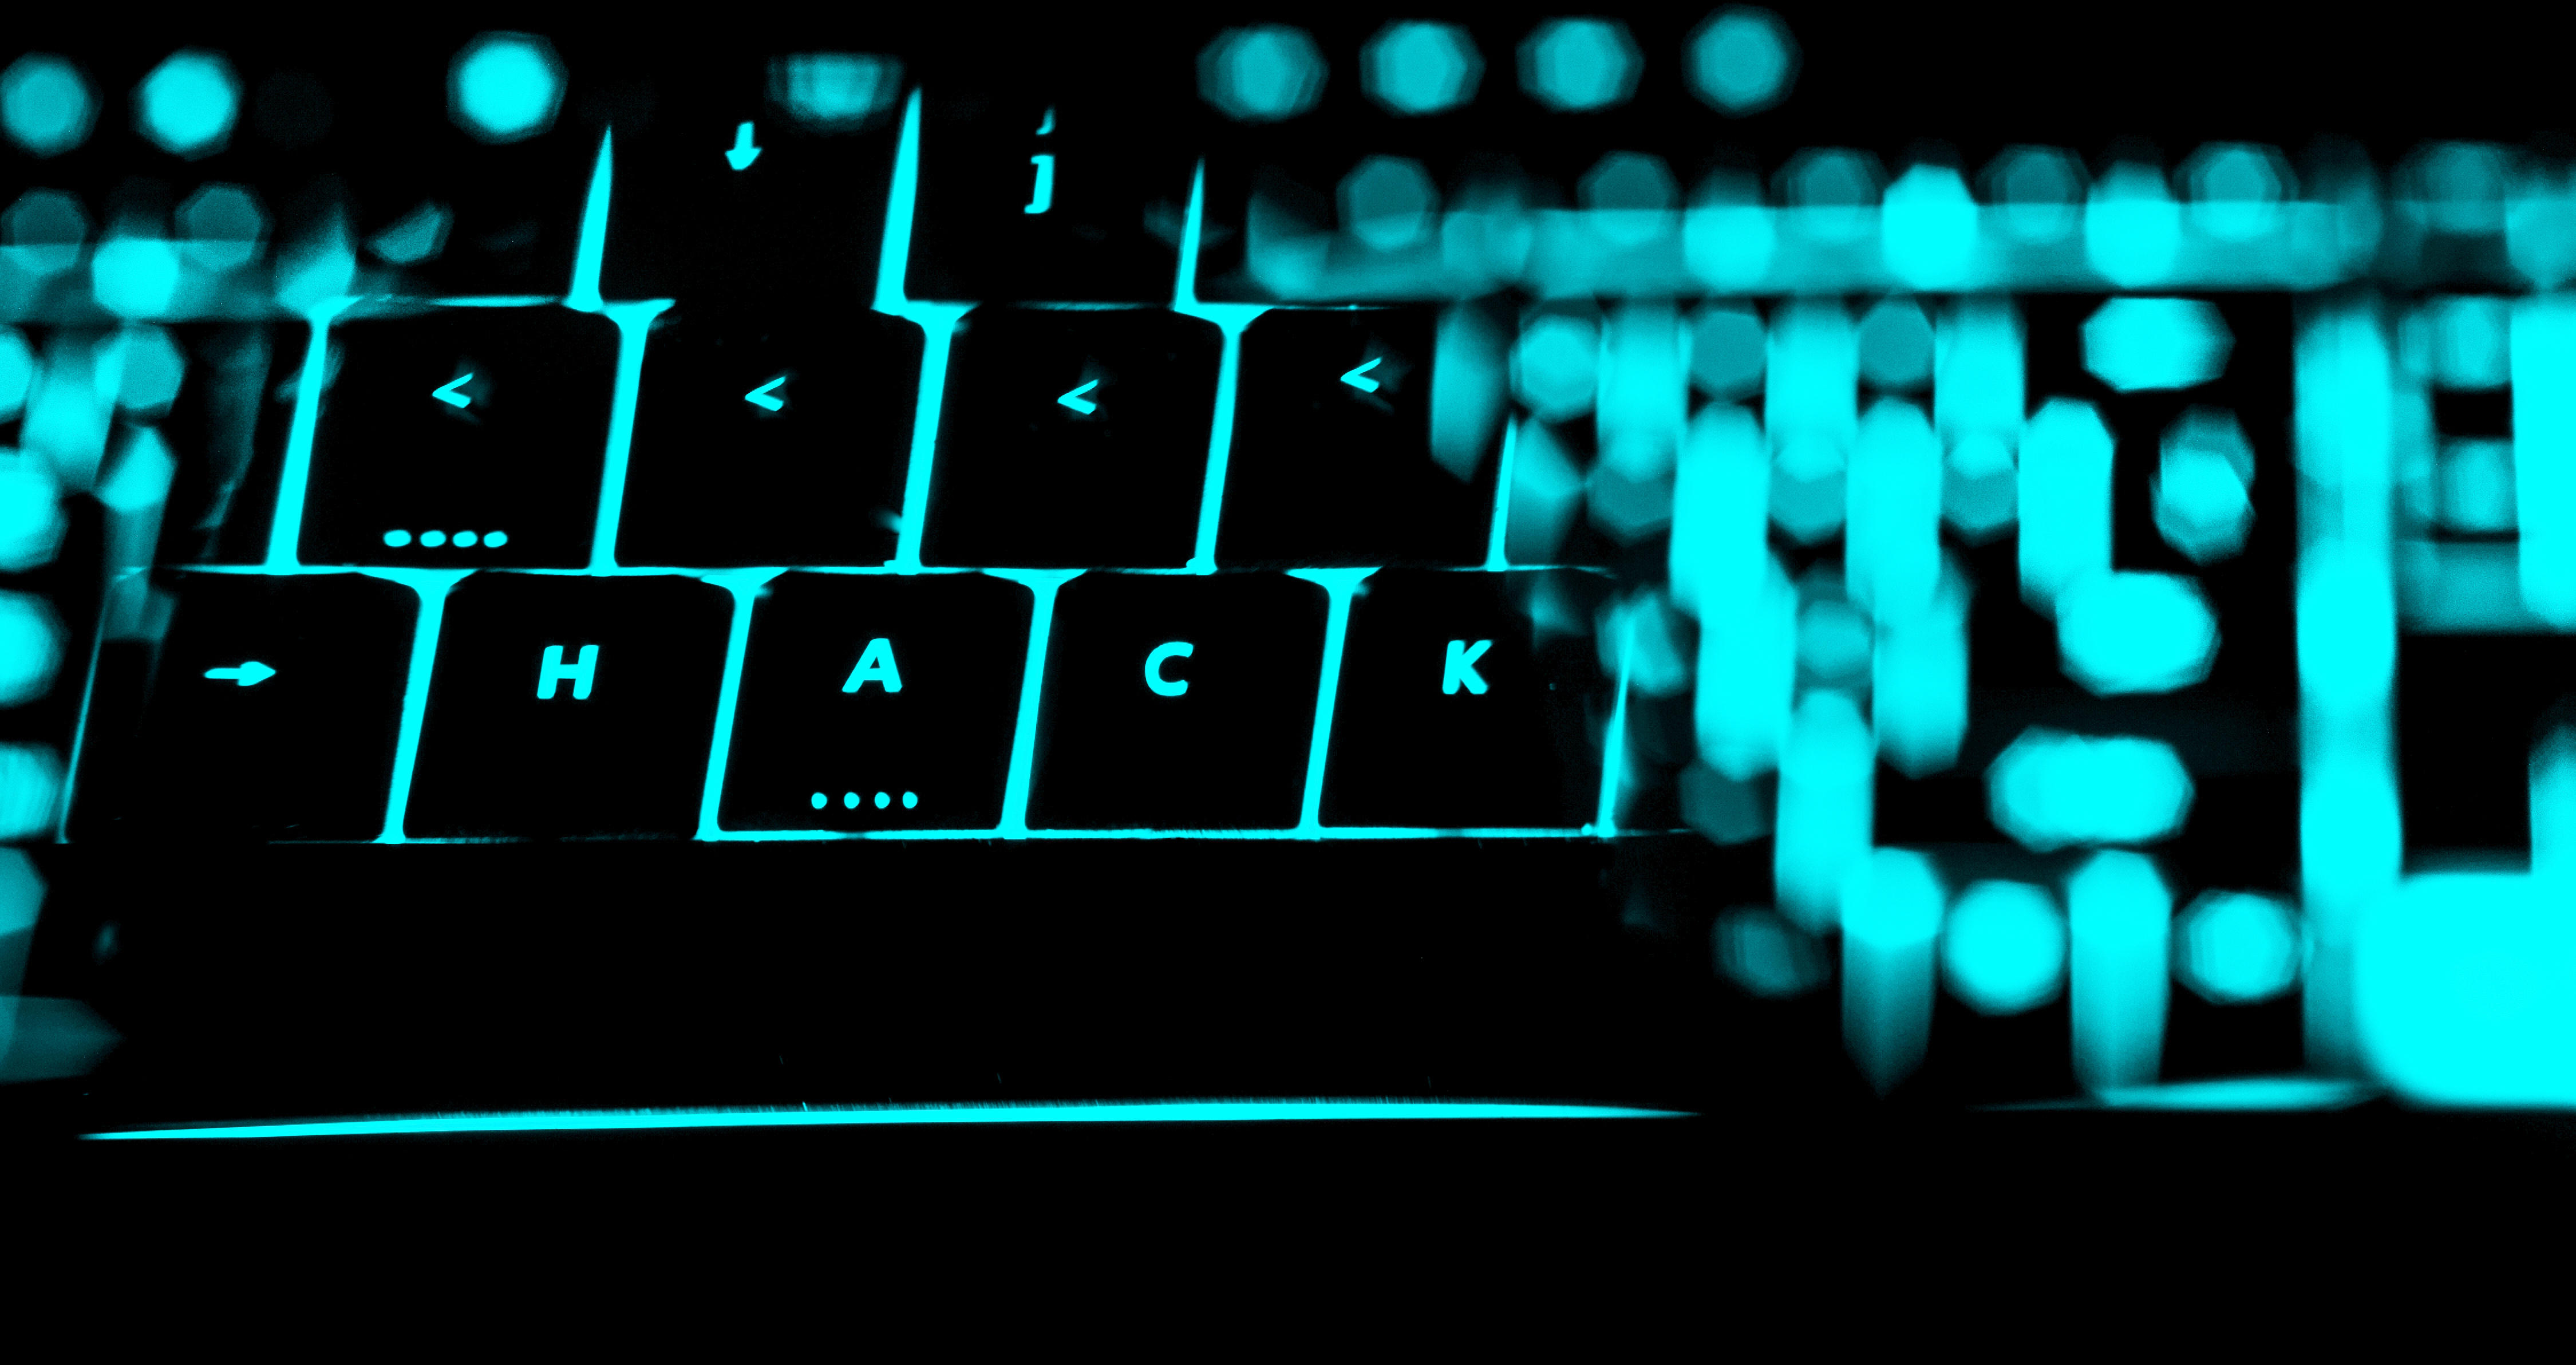 Shadow Brokers hacker group says more NSA leaks to come